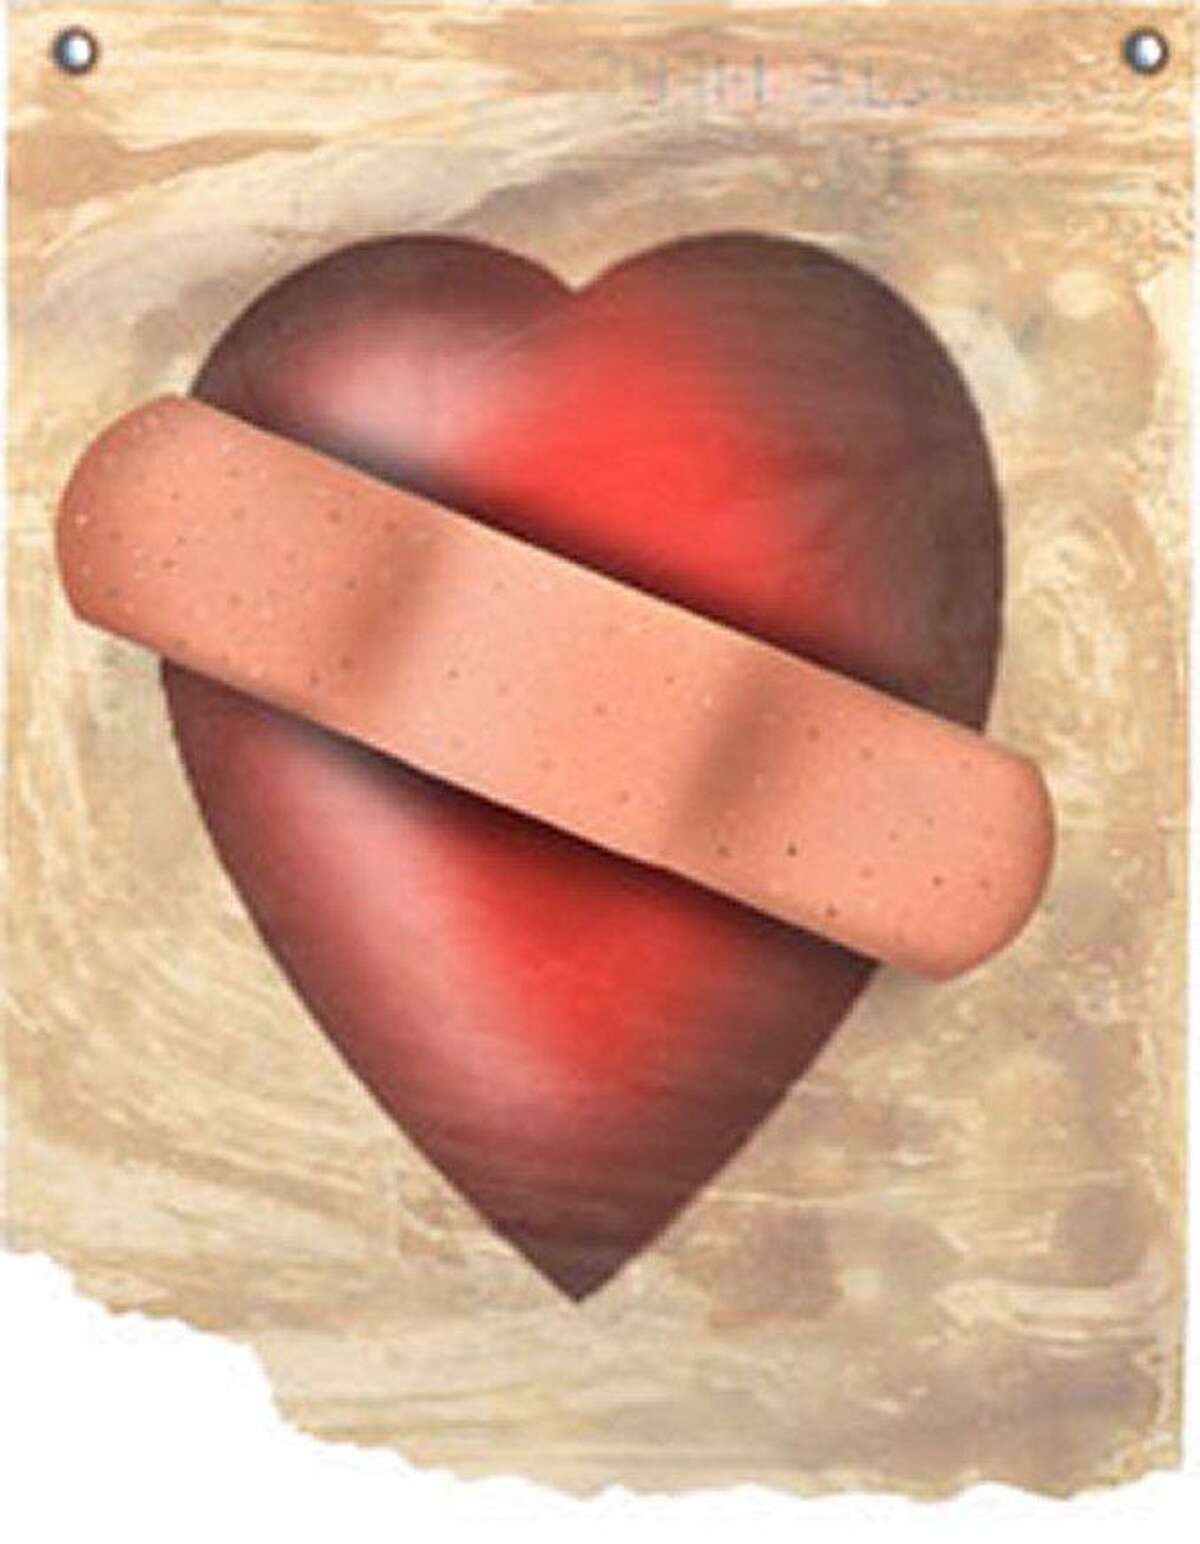 Size as needed (160 dpi, 25p x 33p) Philip Brooker color illustration of heart with Band-Aid across it. EDITORS: This illustration is part of a larger montage of hearts posted as HEART MONTAGE ILLUS. Miami Herald 1997 FOR AT-RISK READERS CATEGORY: ILLUSTRATION SUBJECT: Band-Aid heart illus ARTIST: Philip Brooker ORIGIN: Miami Herald TYPE: EPS JPEG SIZE: As needed ENTERED: 3/20/97 REVISED: STORY SLUG: Stand-alone FOR AT-RISK READERS illustration, feature, features, holiday, valentine's, day, valentine, human, heart, love, marriage, romance, dating, courtship, divorce, broken, injury, bandaid, band-aid, MI, 1997, brooker, risk, women. HOUCHRON CAPTION: (08/23/2004): None.